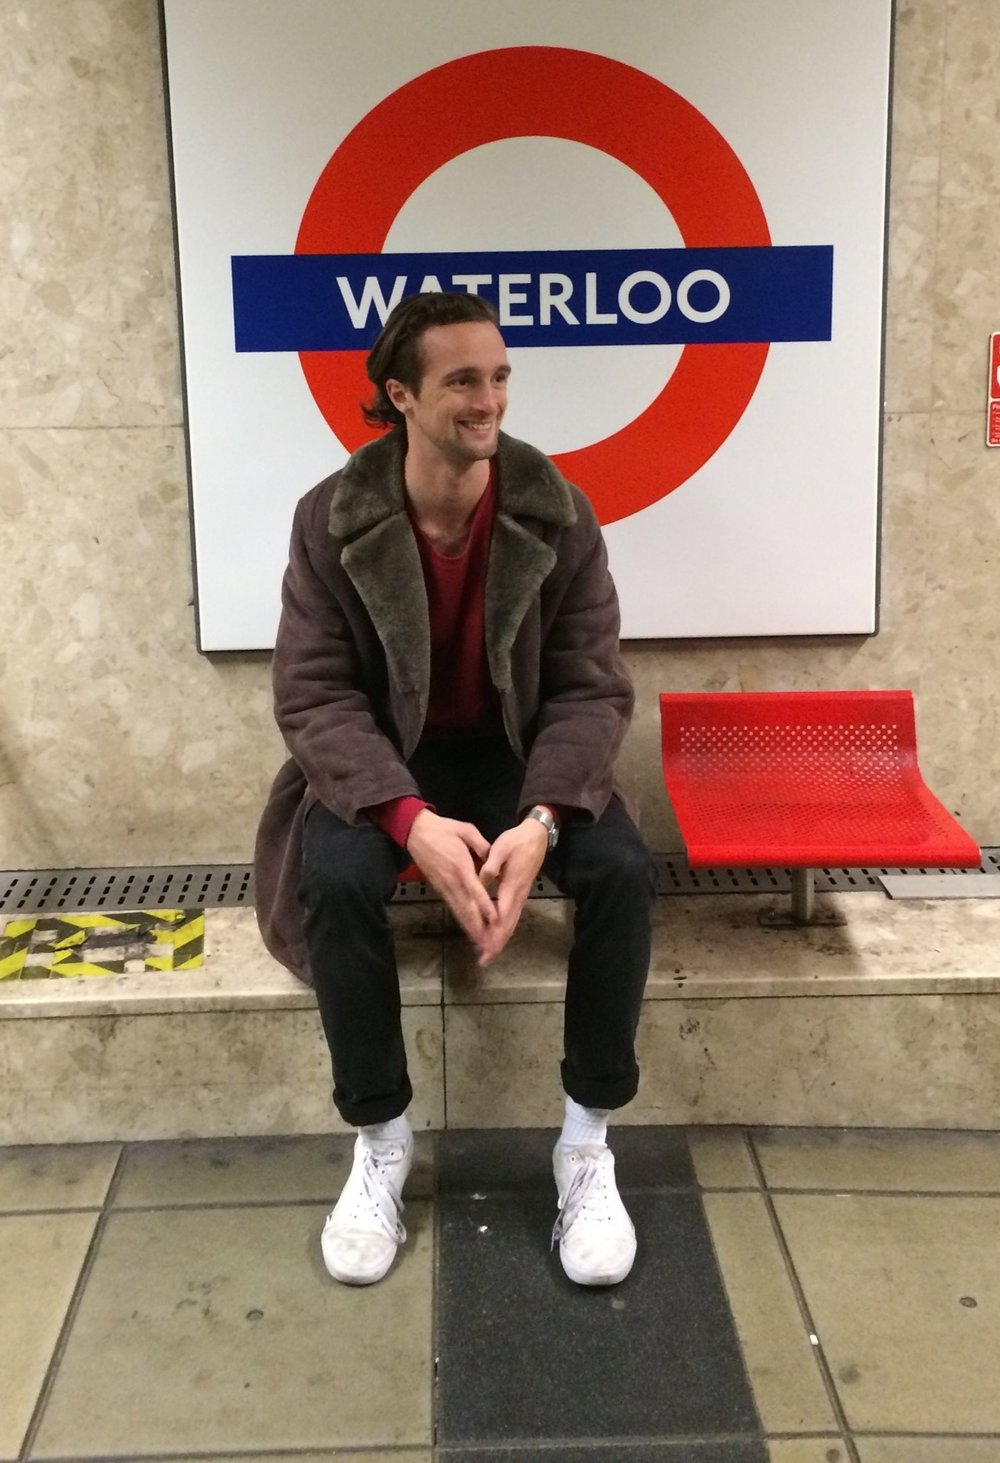 Liam+Hartley+Waterloo.jpg